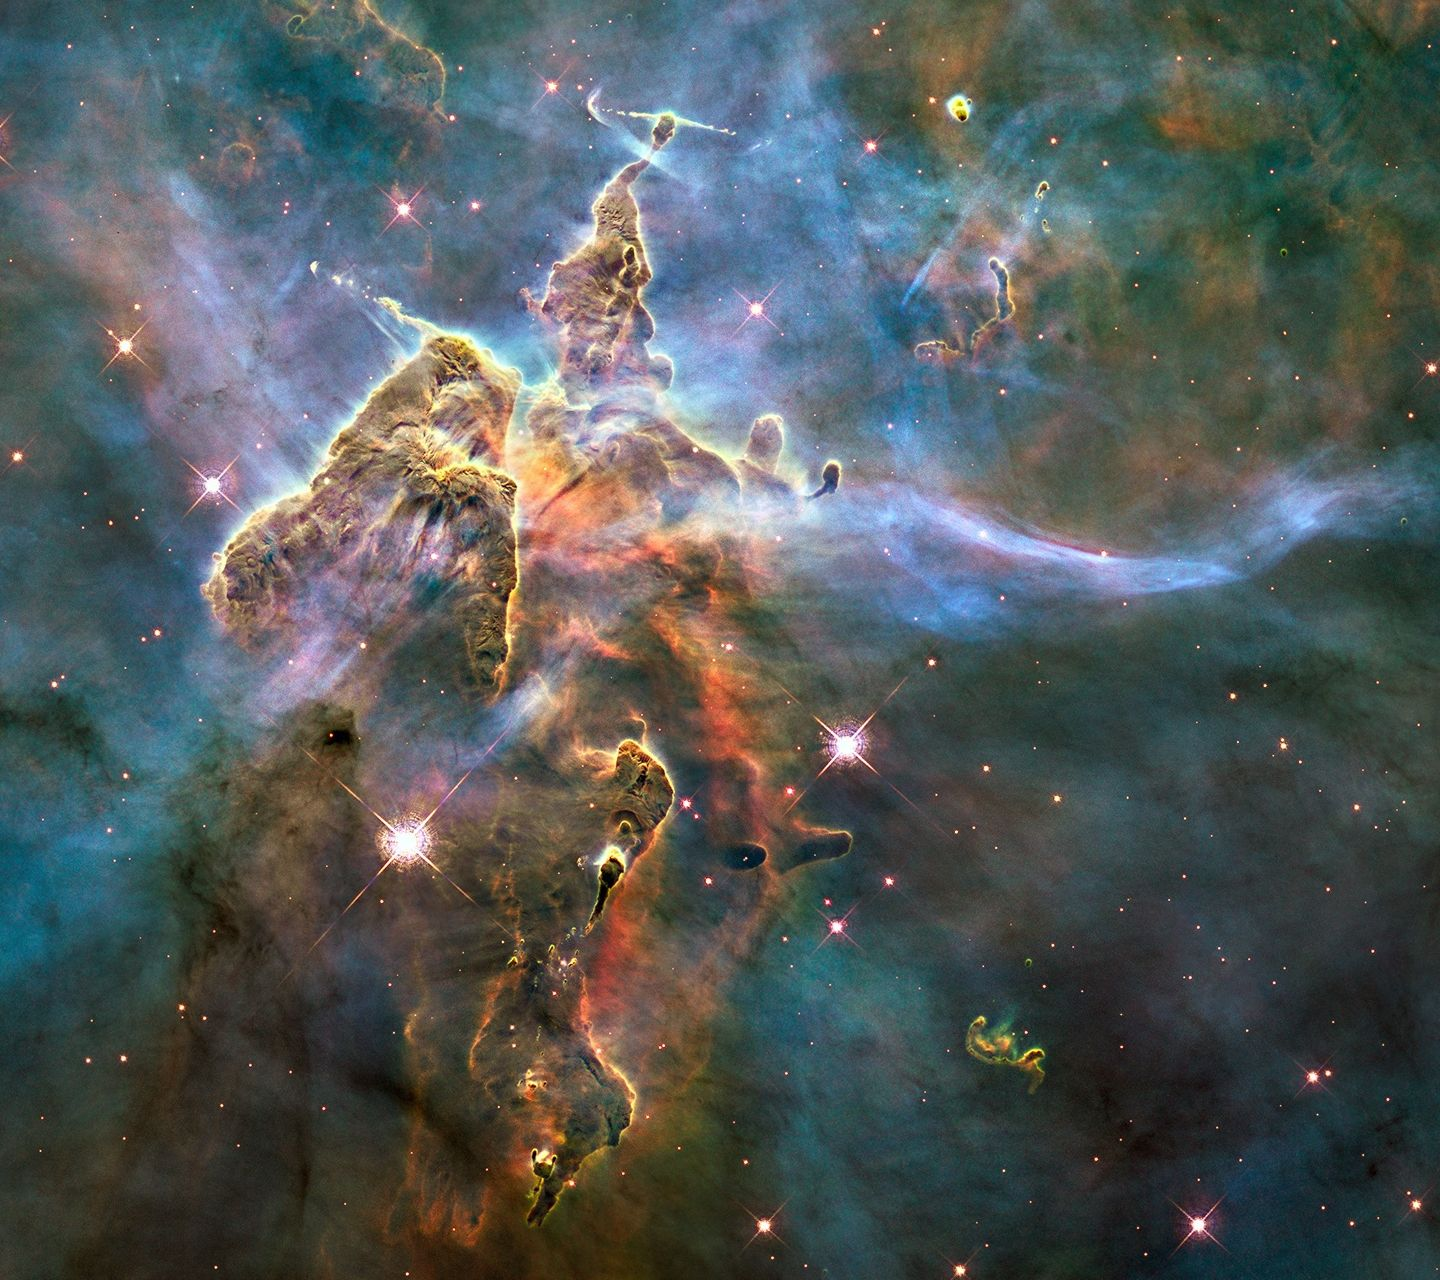 hubble heritage nasa screensavers - photo #19